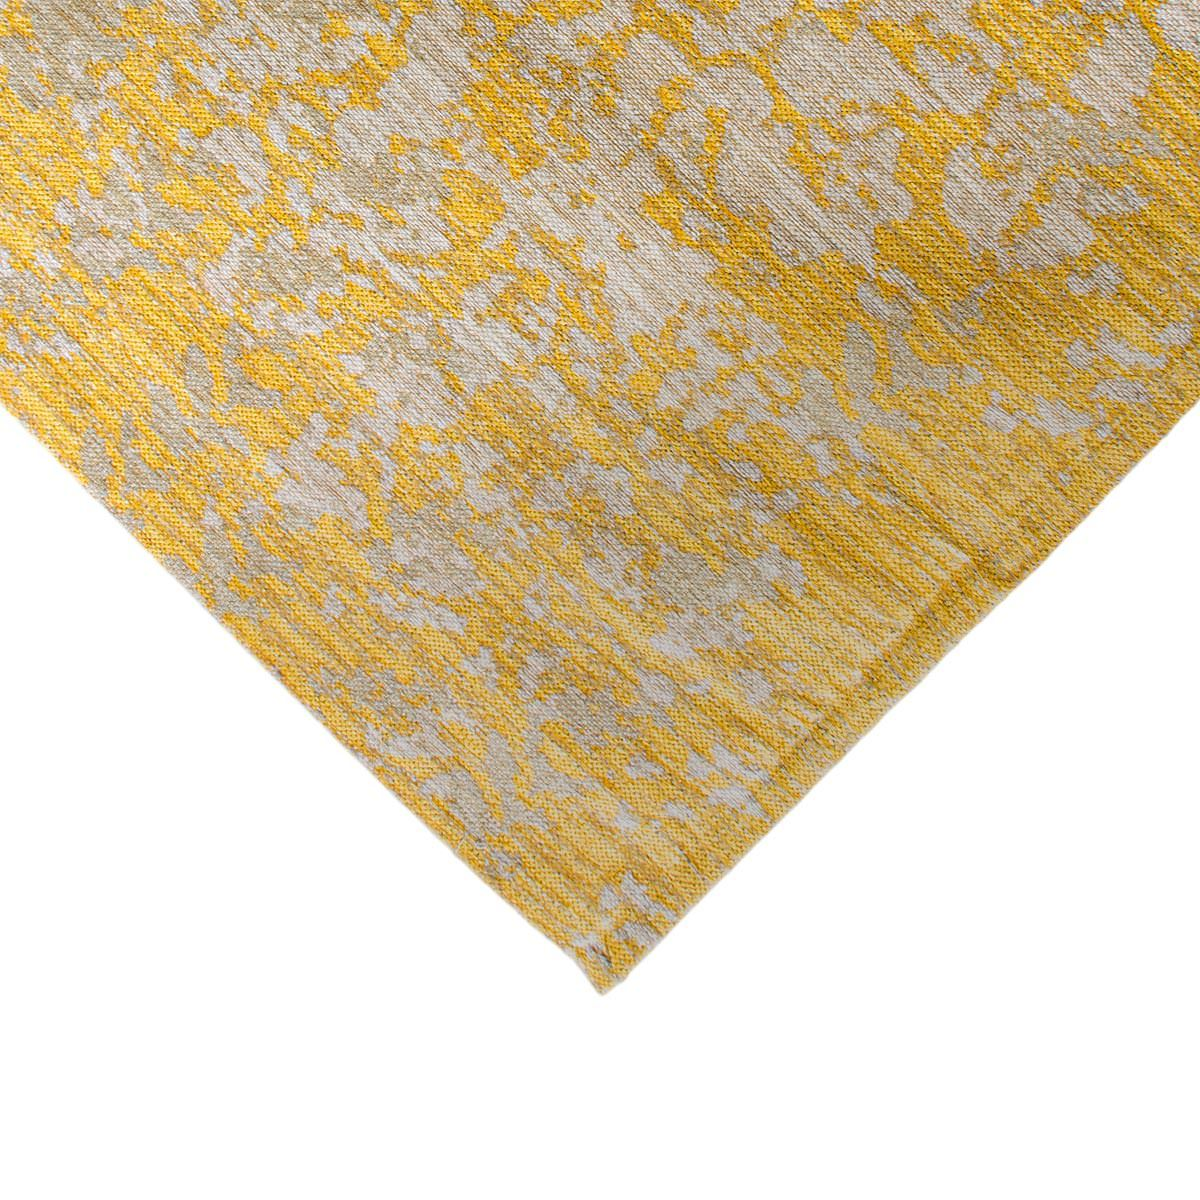 Marseille Rug 29 Yellow/Grey Runner 4